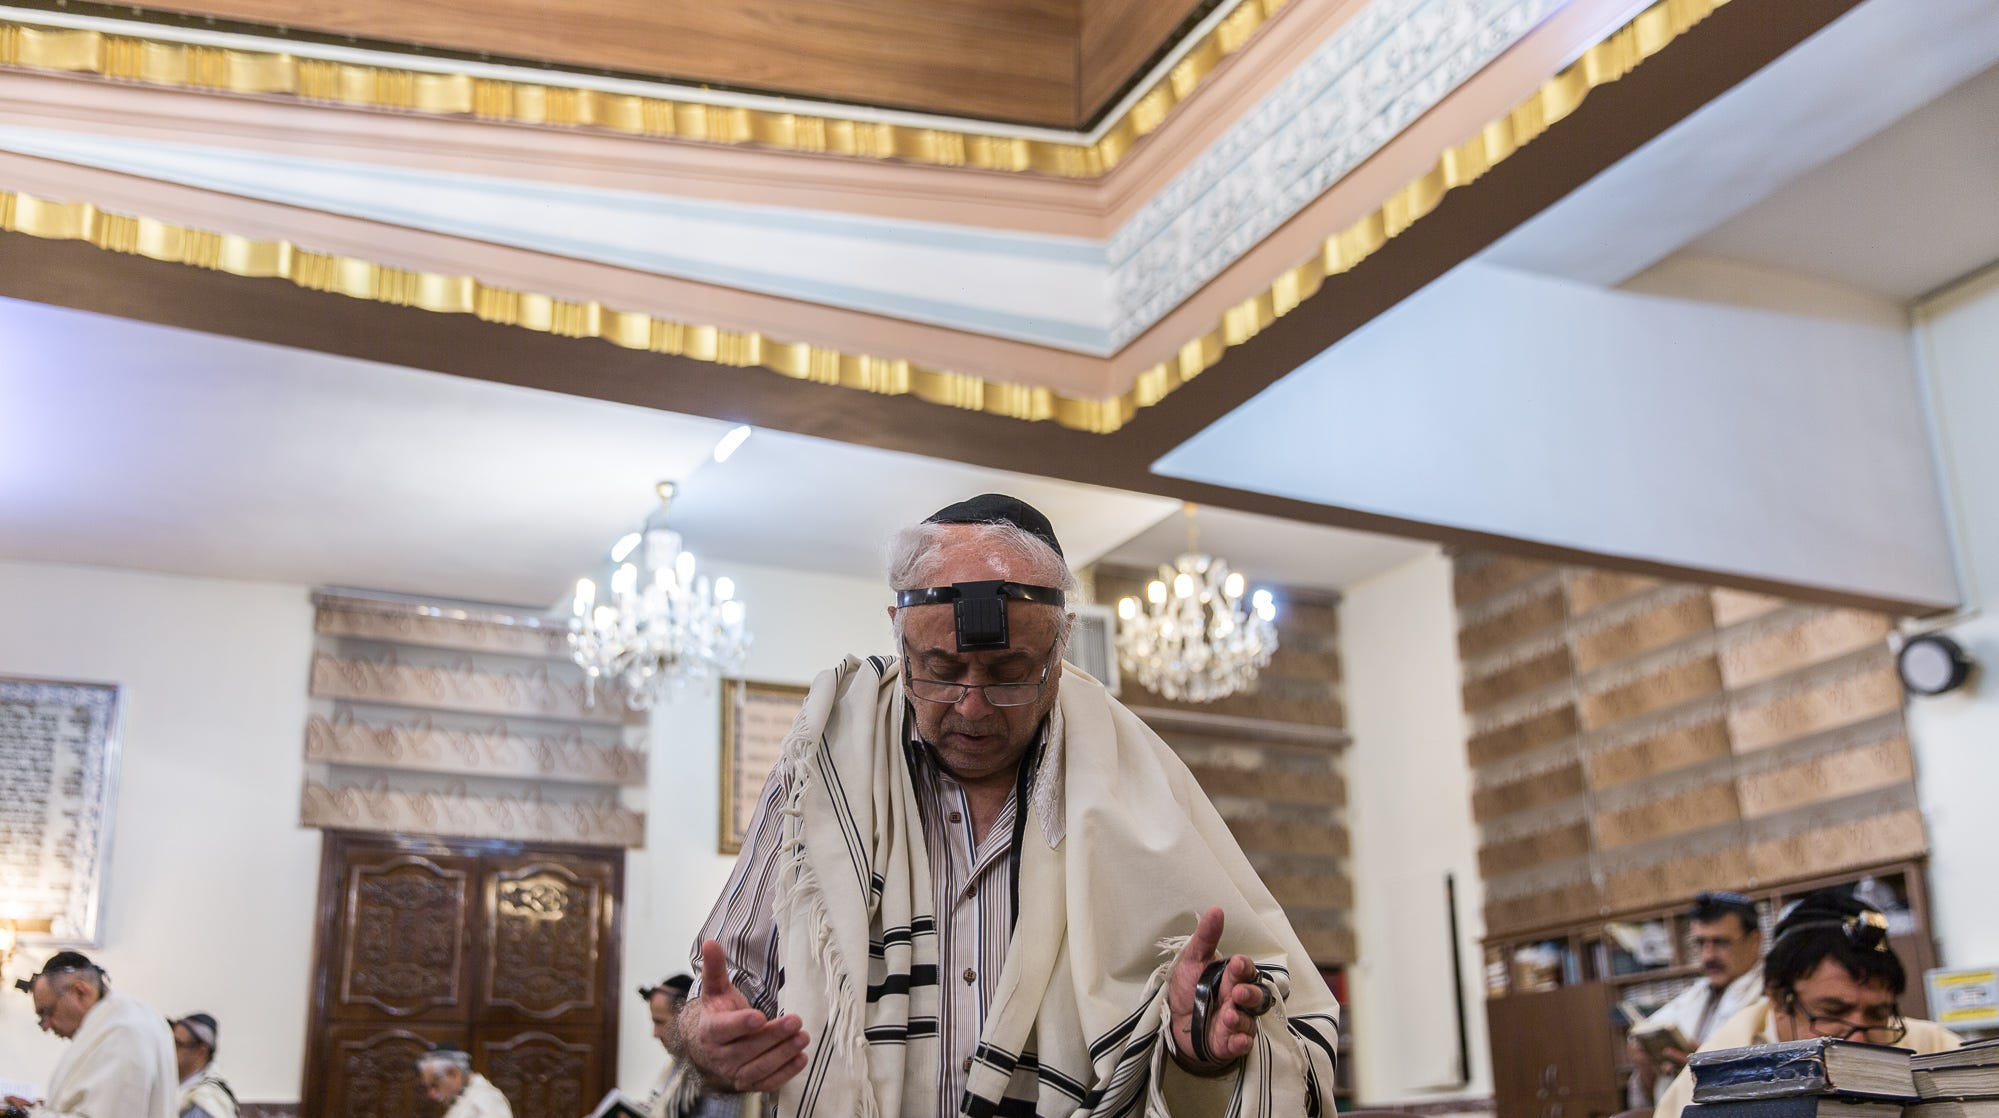 Iran's Jewish community is the largest in the Mideast outside Israel – and feels safe and respected